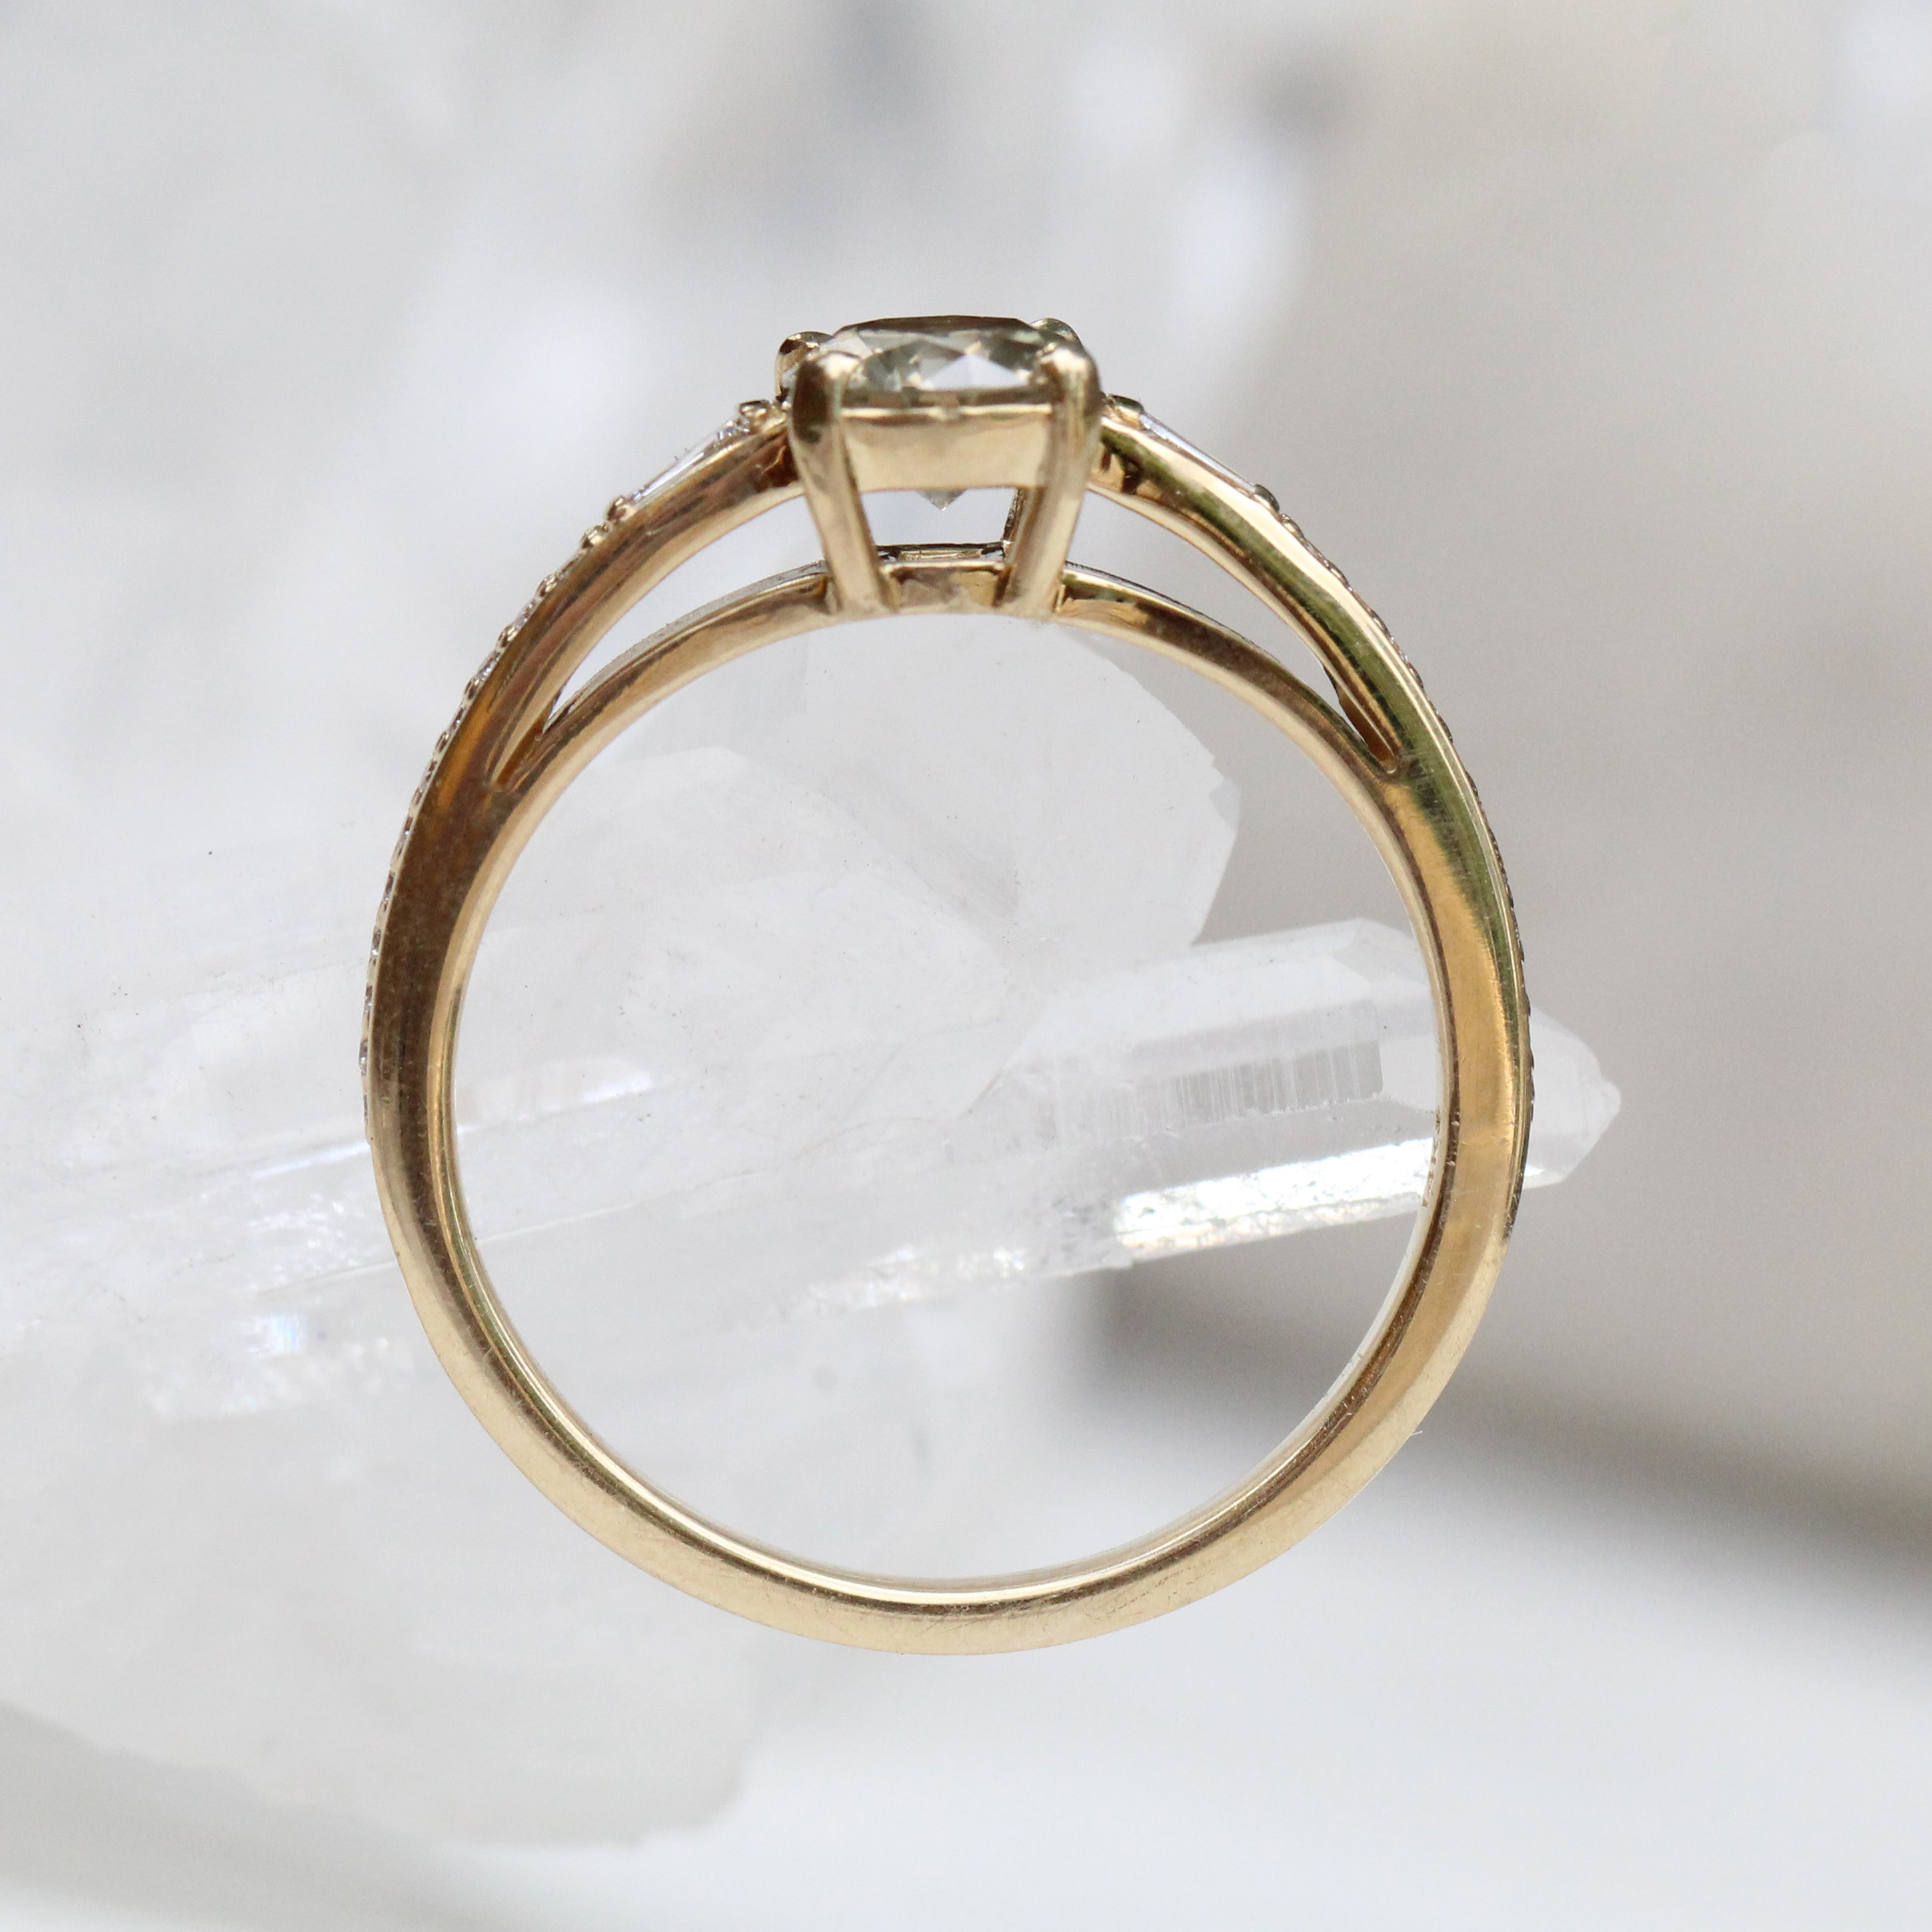 Beckett Ring with a Misty Champagne Diamond in a 14k Yellow Gold - Ready to Size and Ship - Salt & Pepper Celestial Diamond Engagement Rings and Wedding Bands  by Midwinter Co.